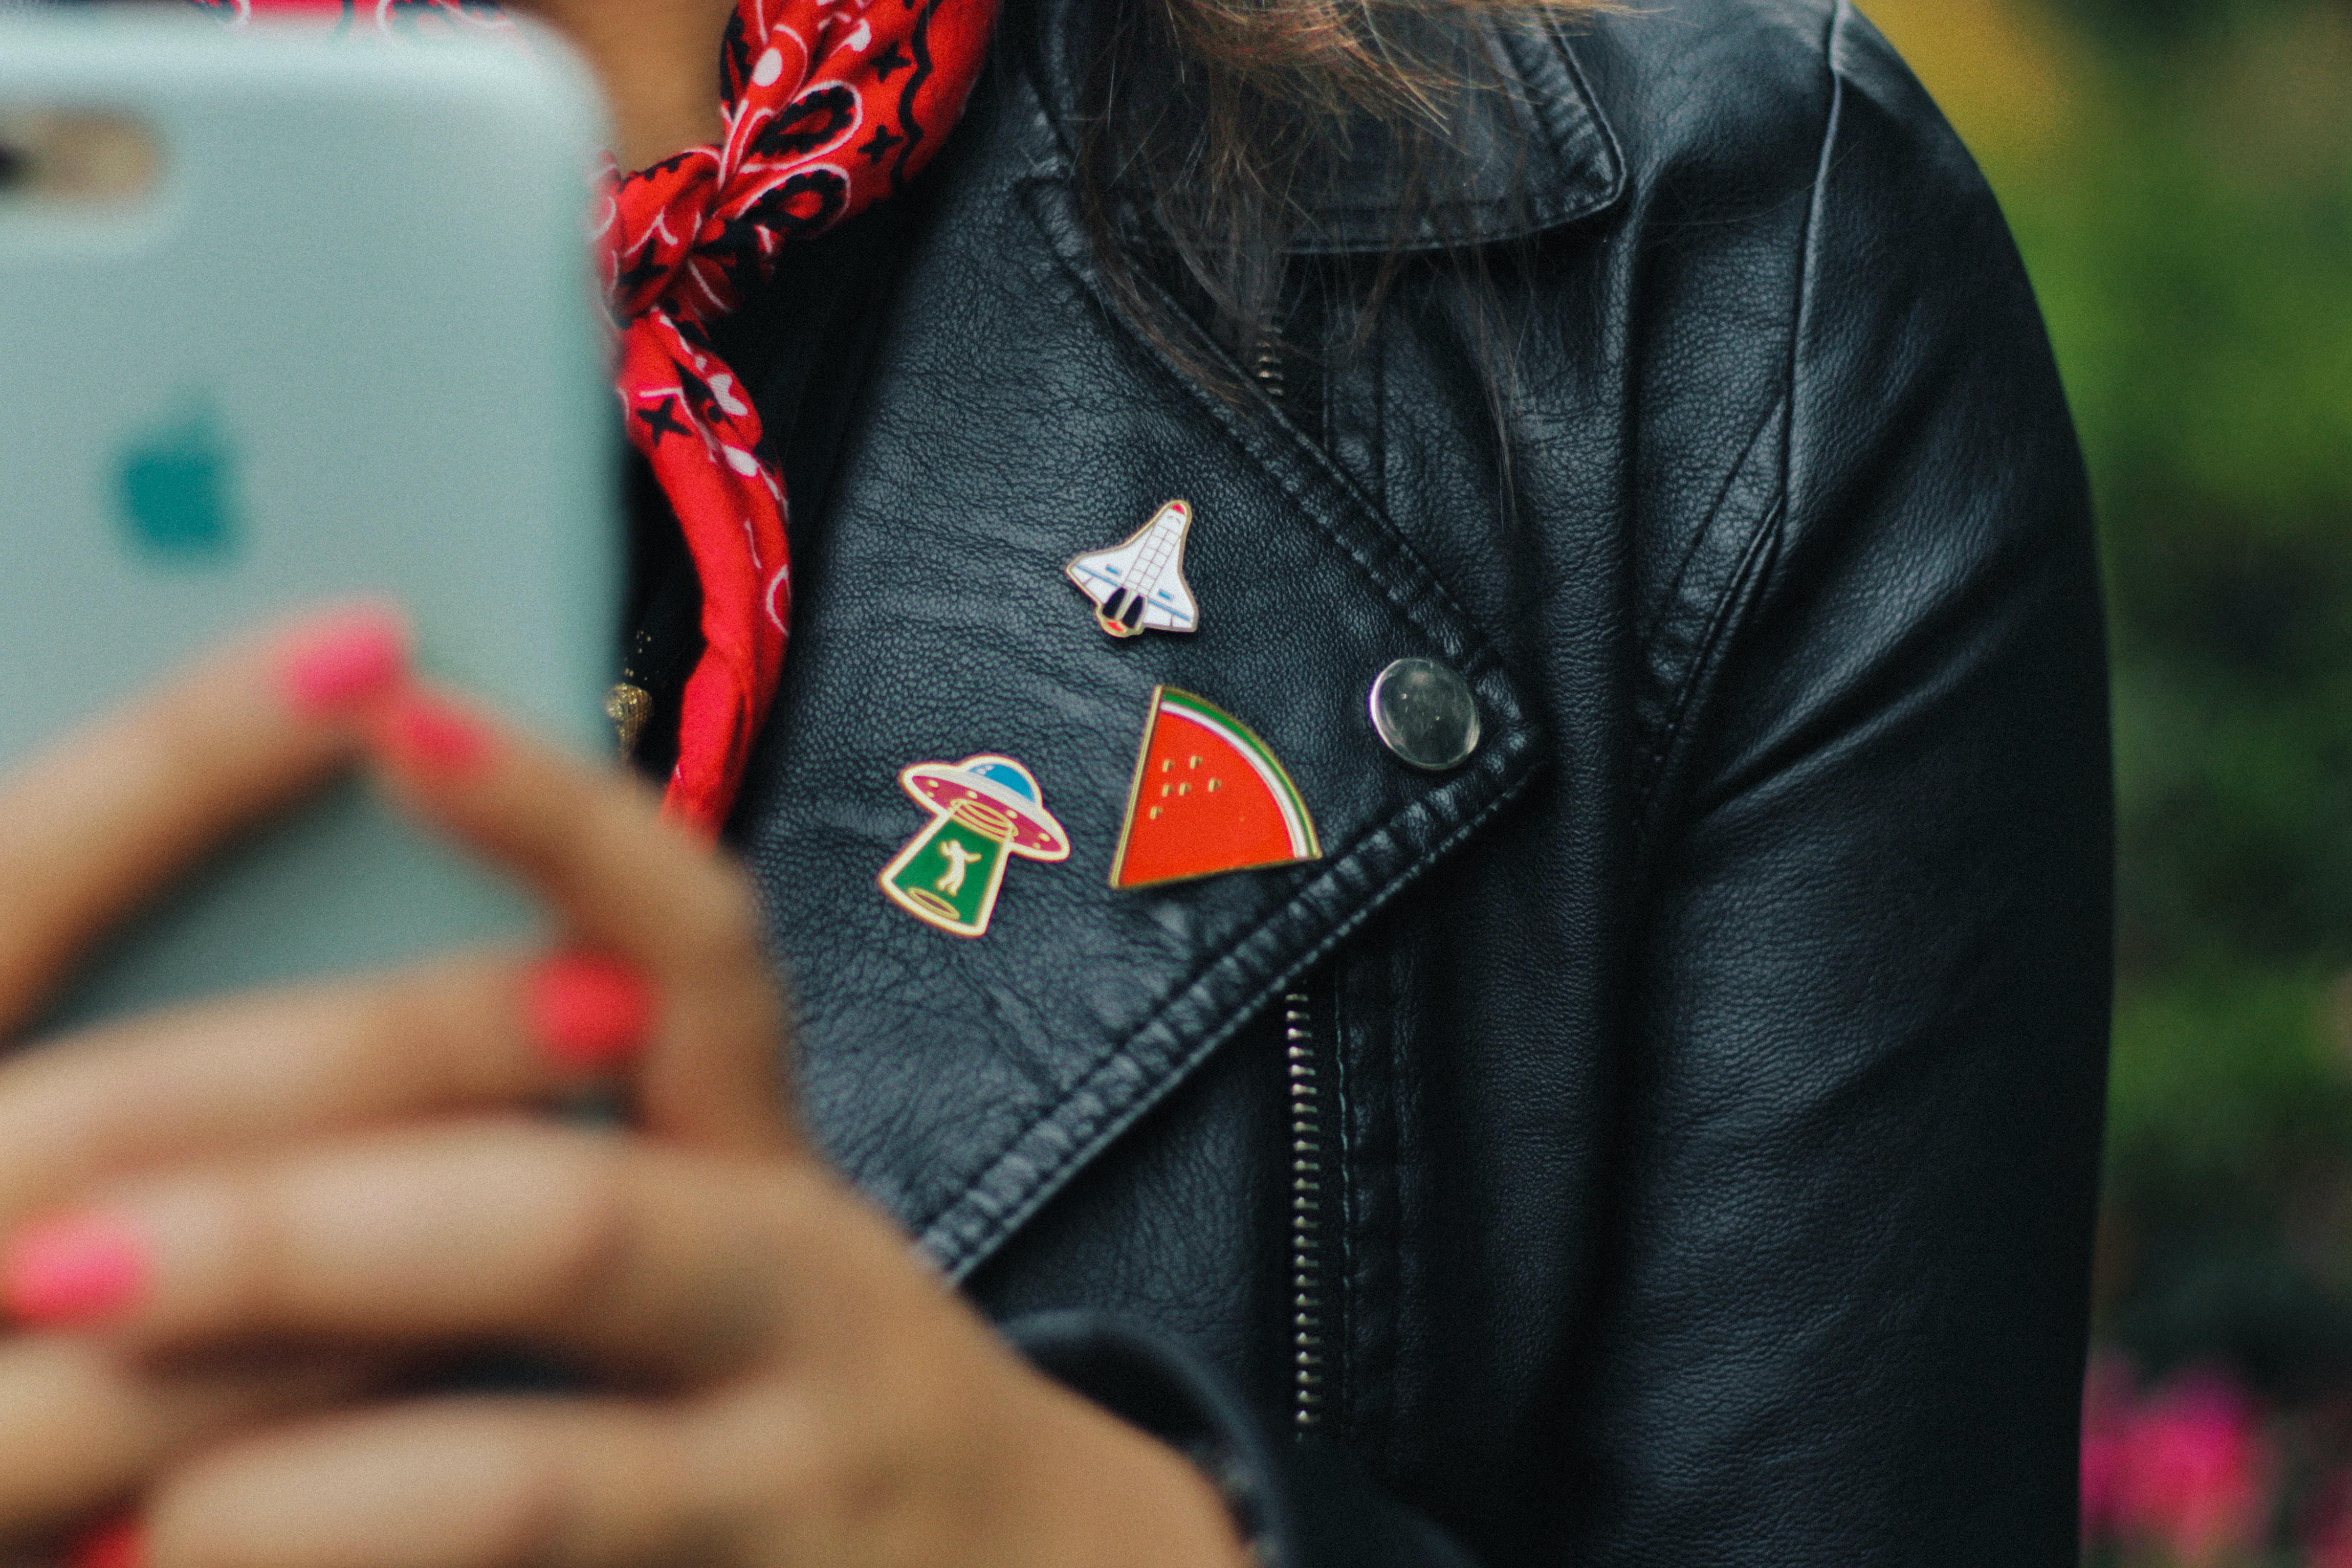 person wearing black leather jacket holding mobile phone